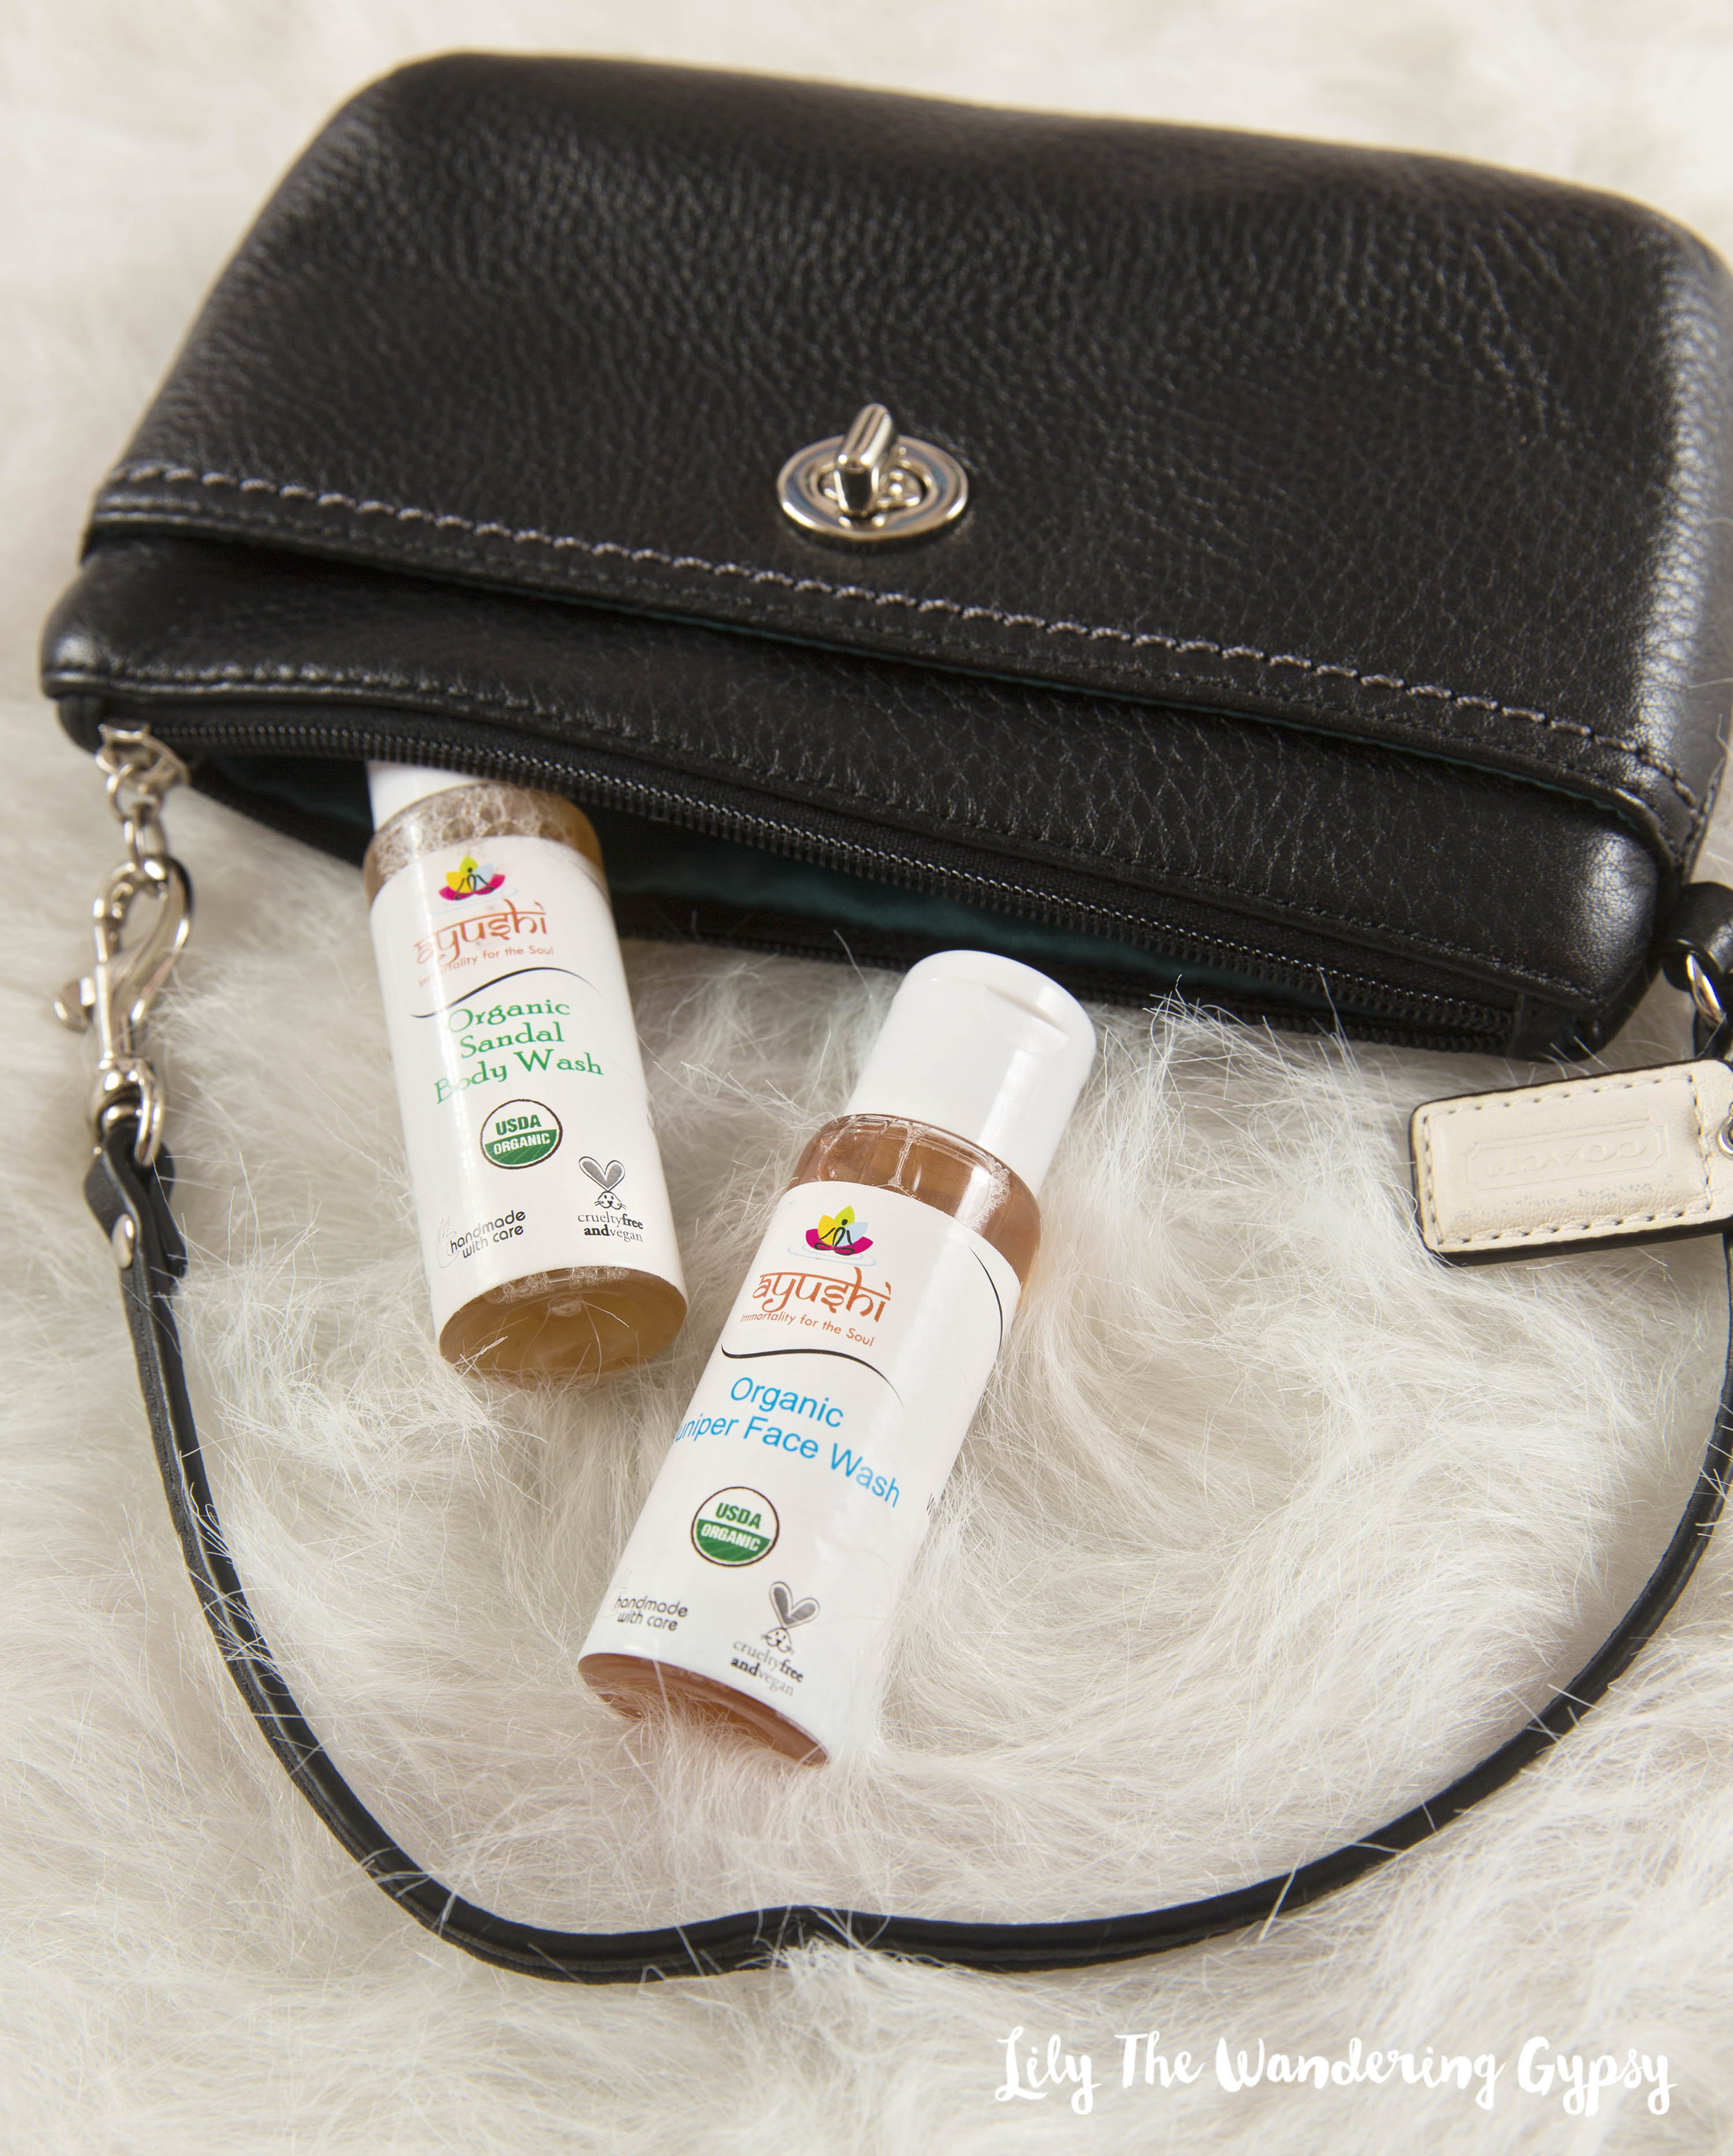 These Organic Body and Face Washes are the perfect size for travel if you're going somewhere for a long weekend. The Organic Sandal Body Wash has a strong sandalwood scent.